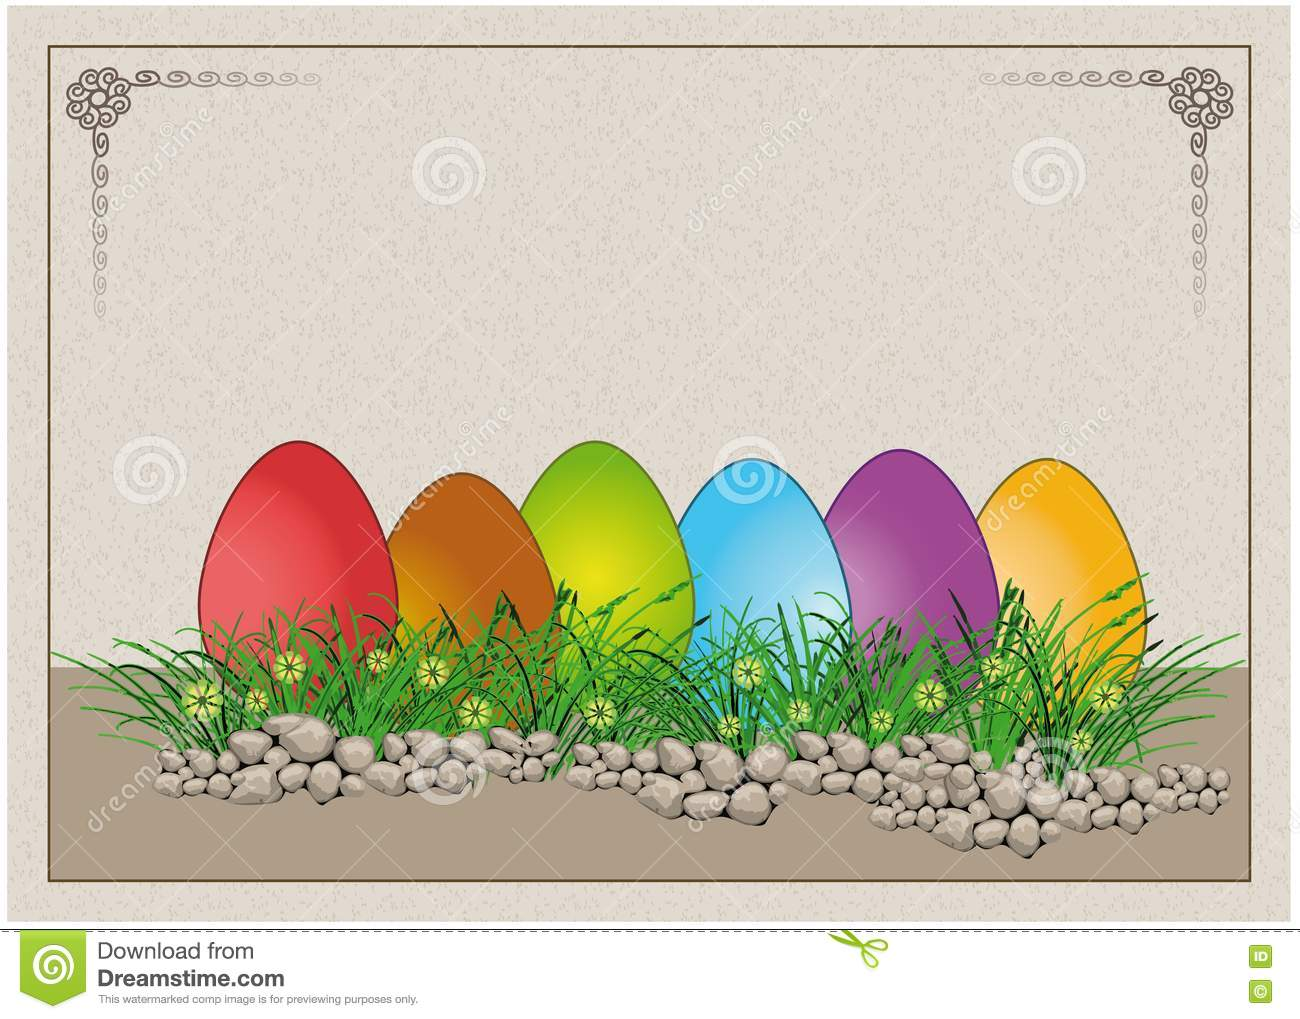 Easter egg colors paper card royalty free stock image - What are the easter colors ...